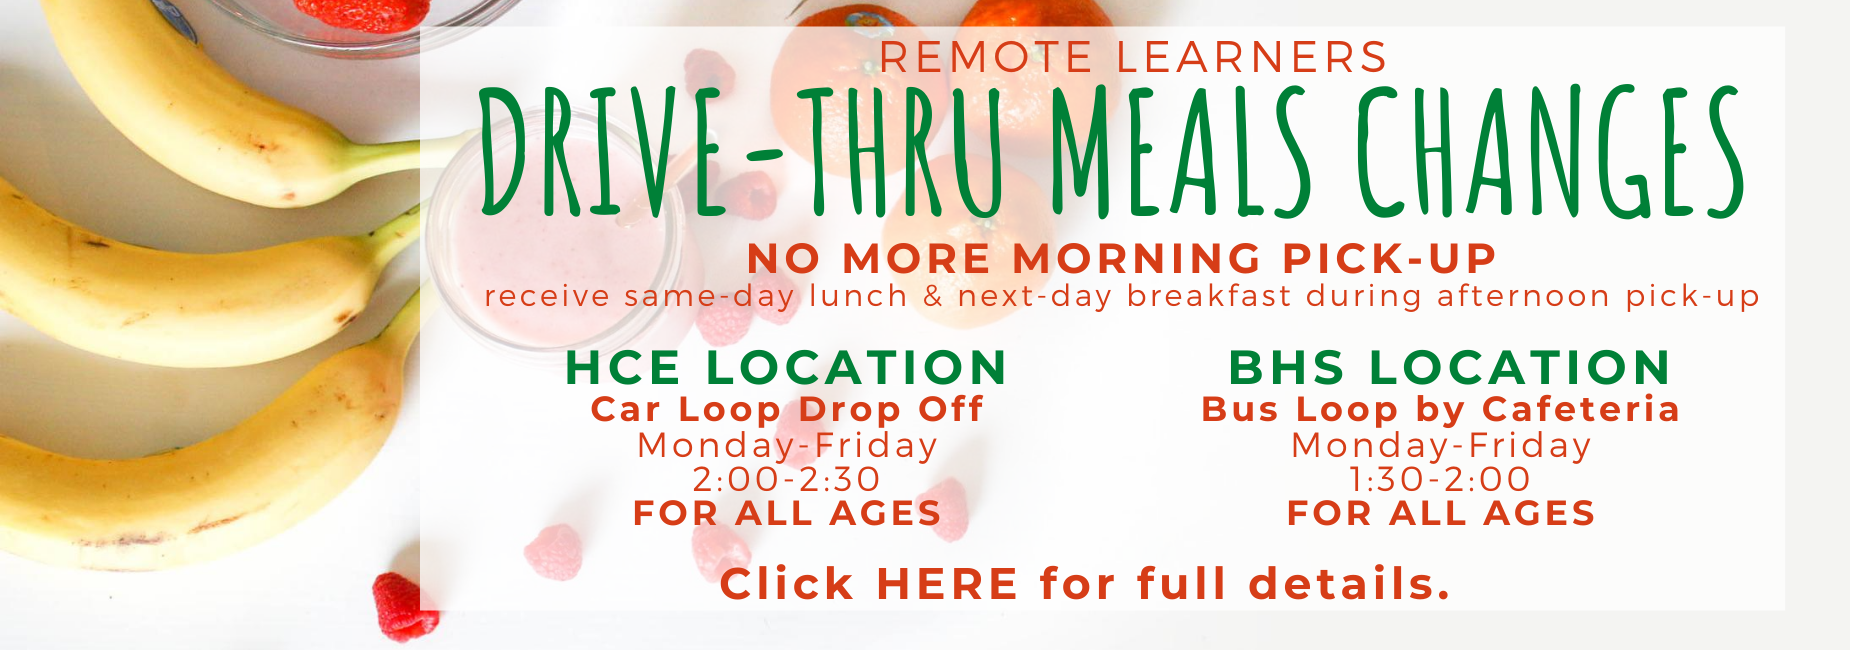 Remote Learner Drive Through Meals Available